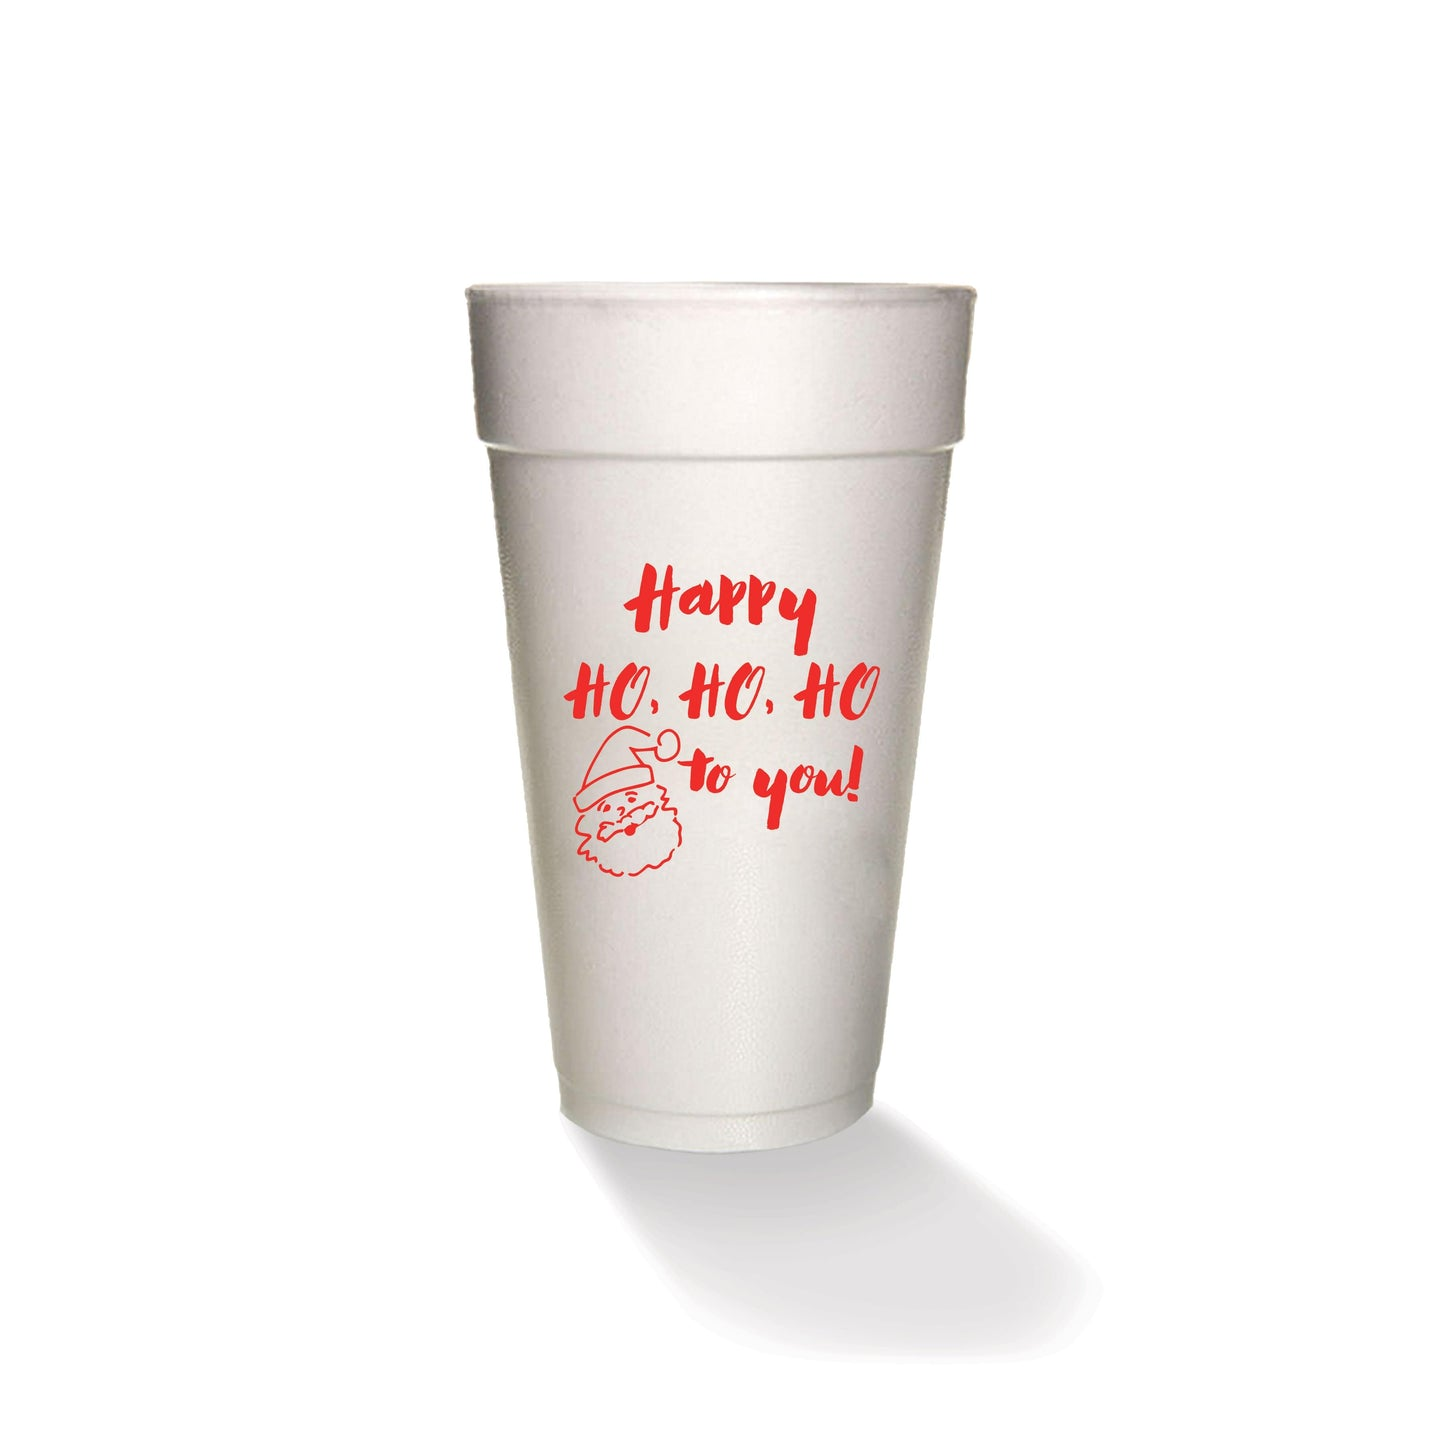 Happy Ho Ho Ho To You Styrofoam Cups (set of 8)